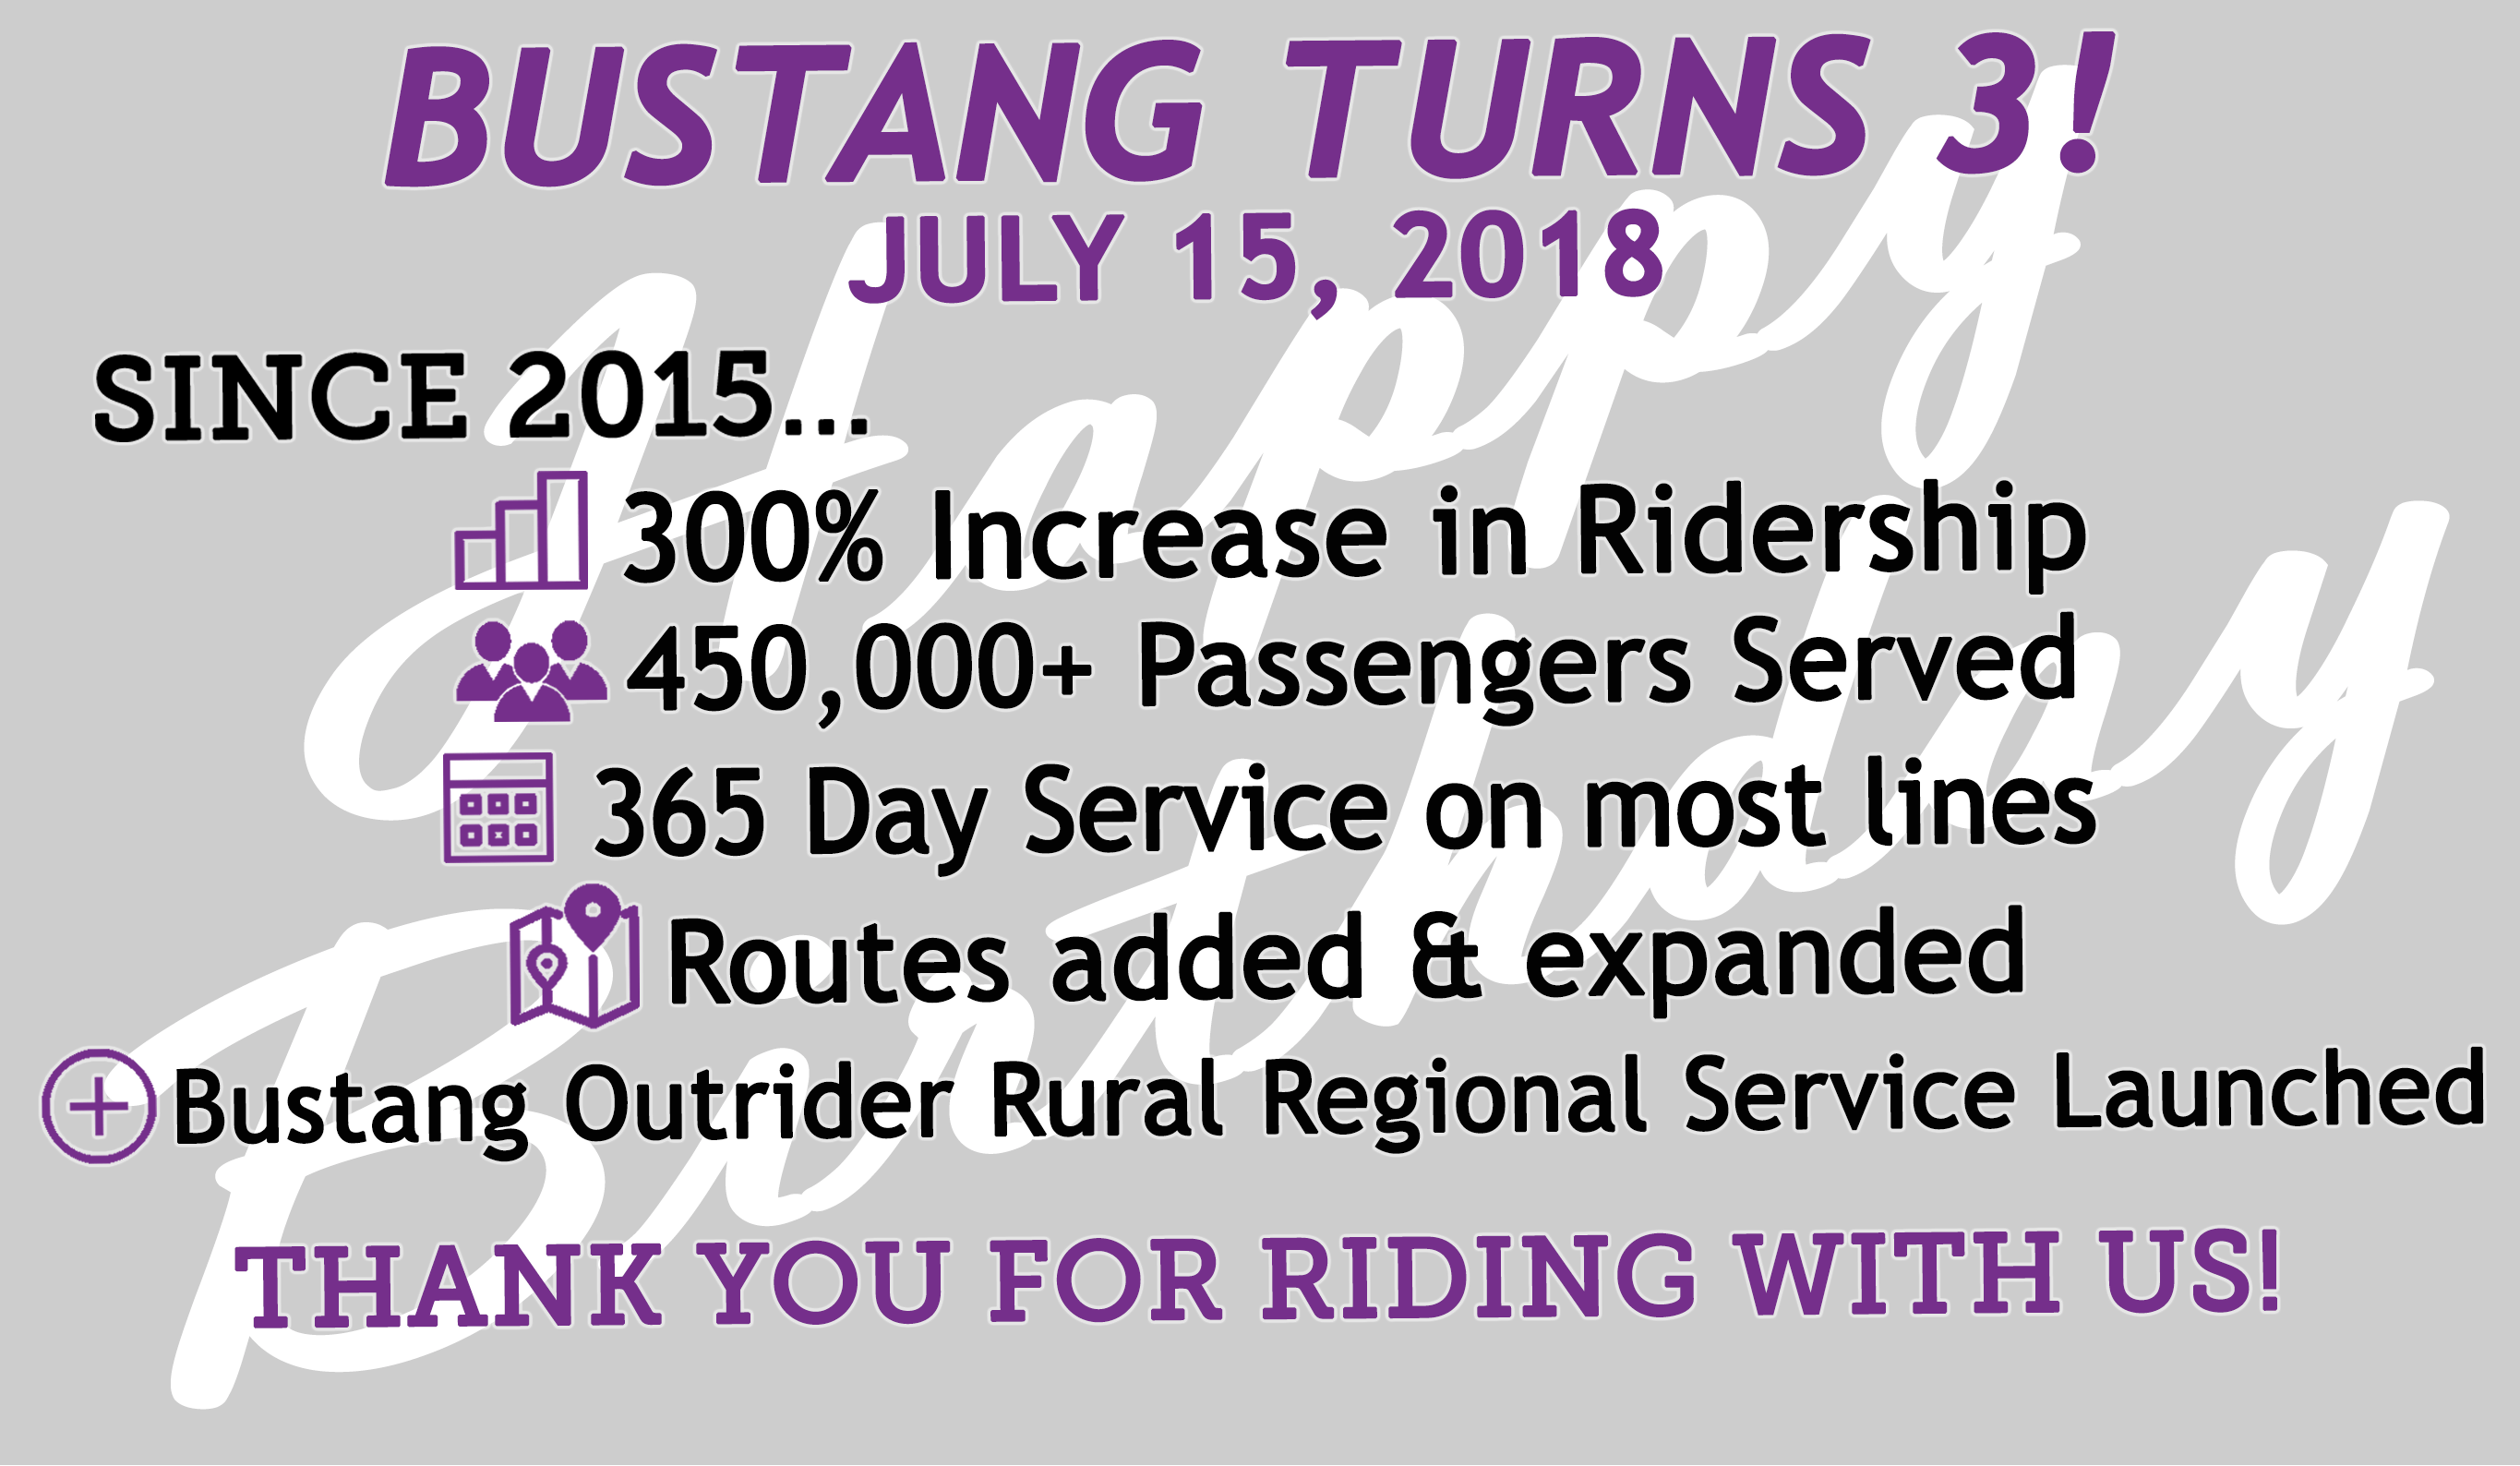 Bustang Exceeds Ridership, Revenue Projections as it Hits 3-Year Anniversary